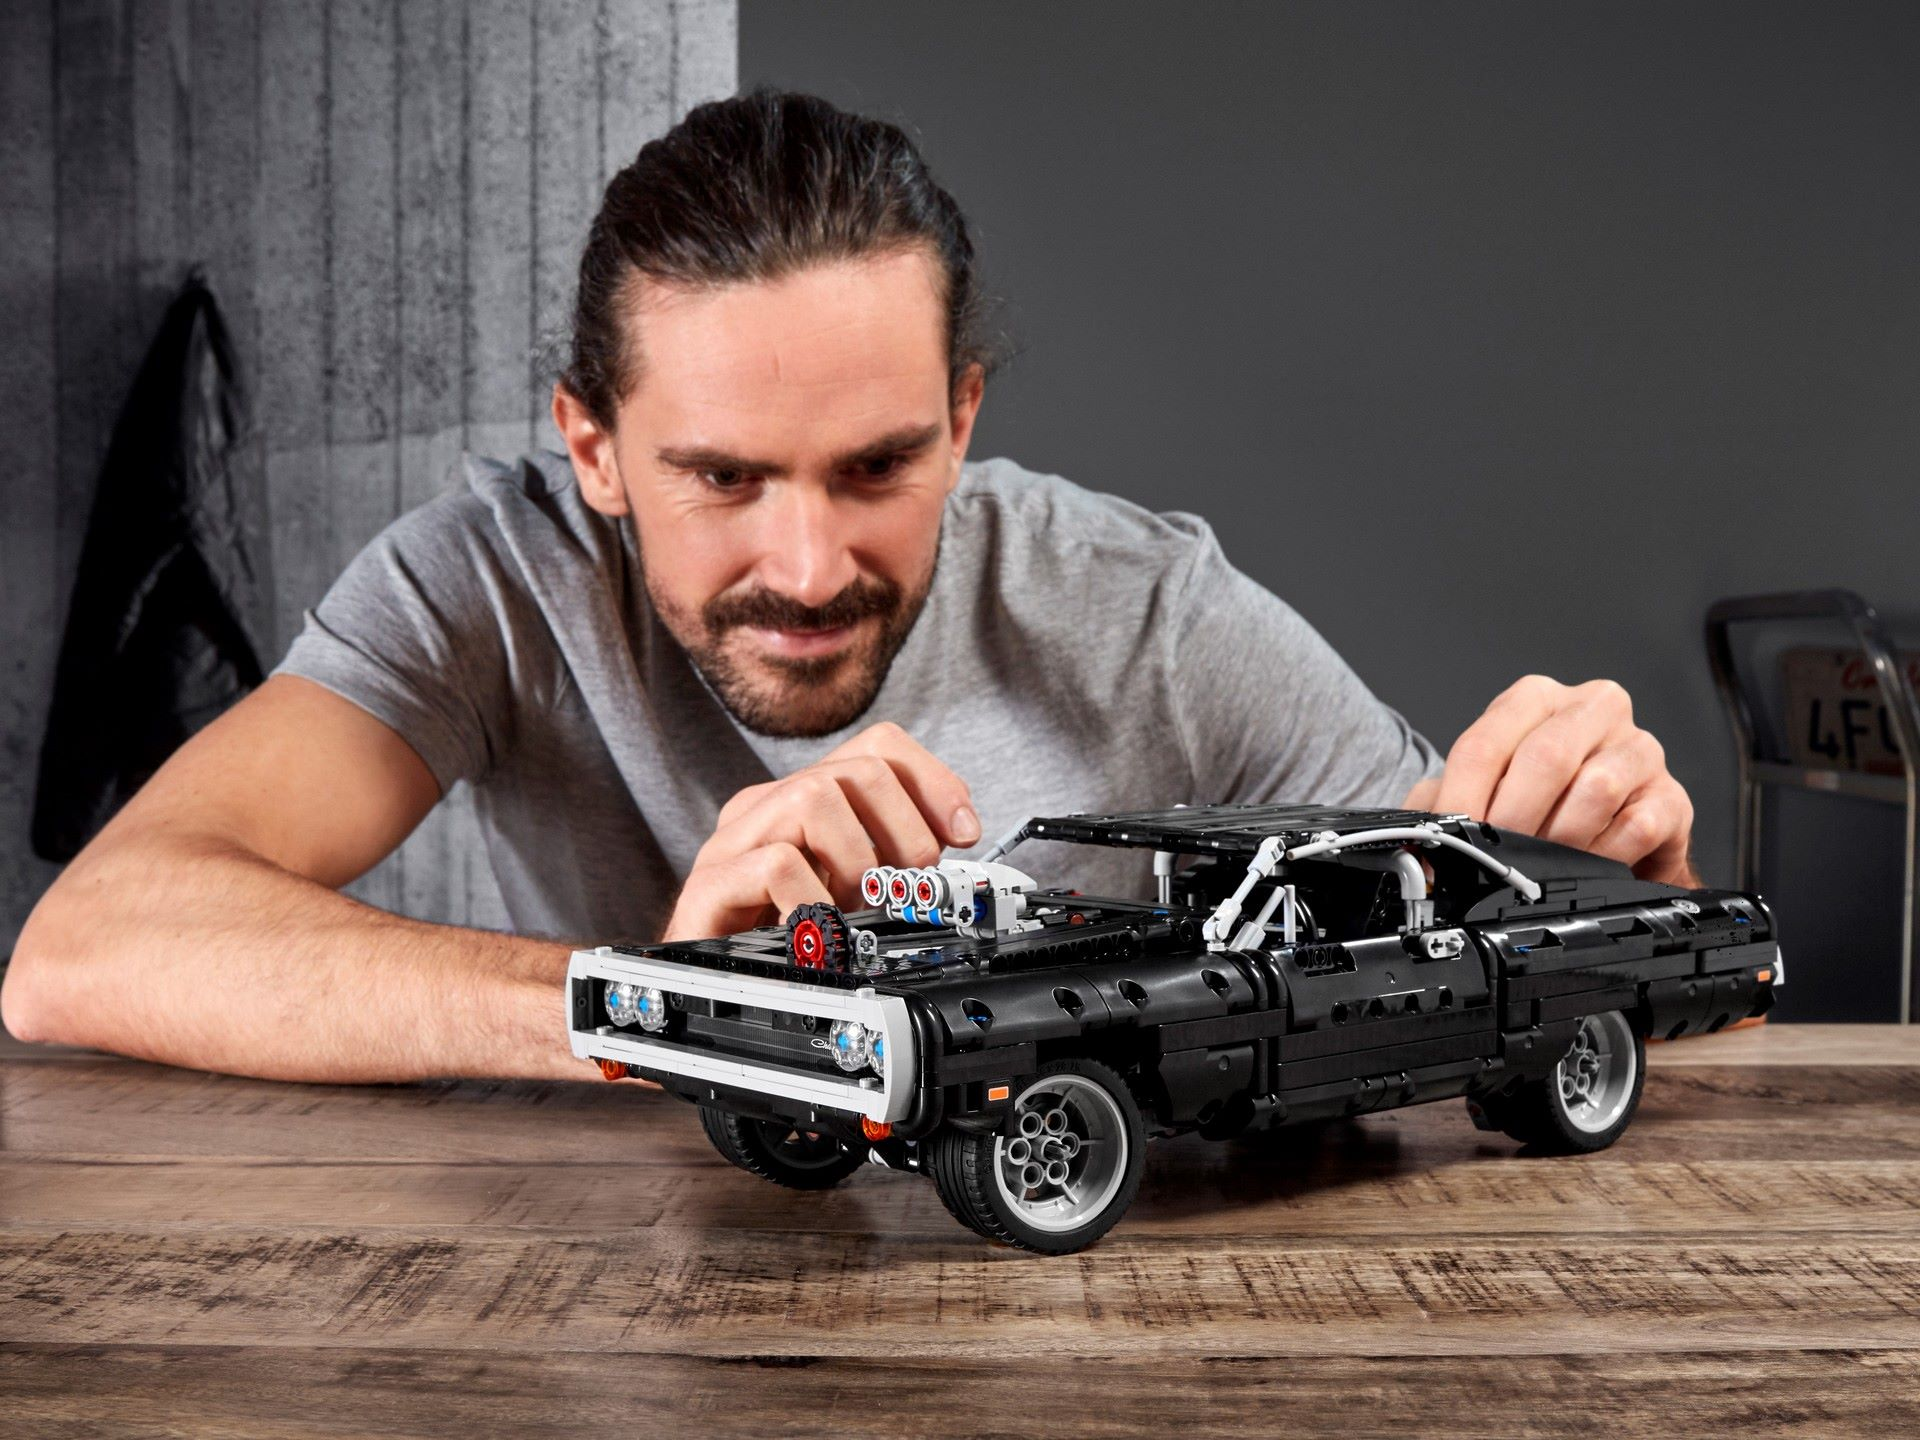 Lego-Dodge-Charger-3